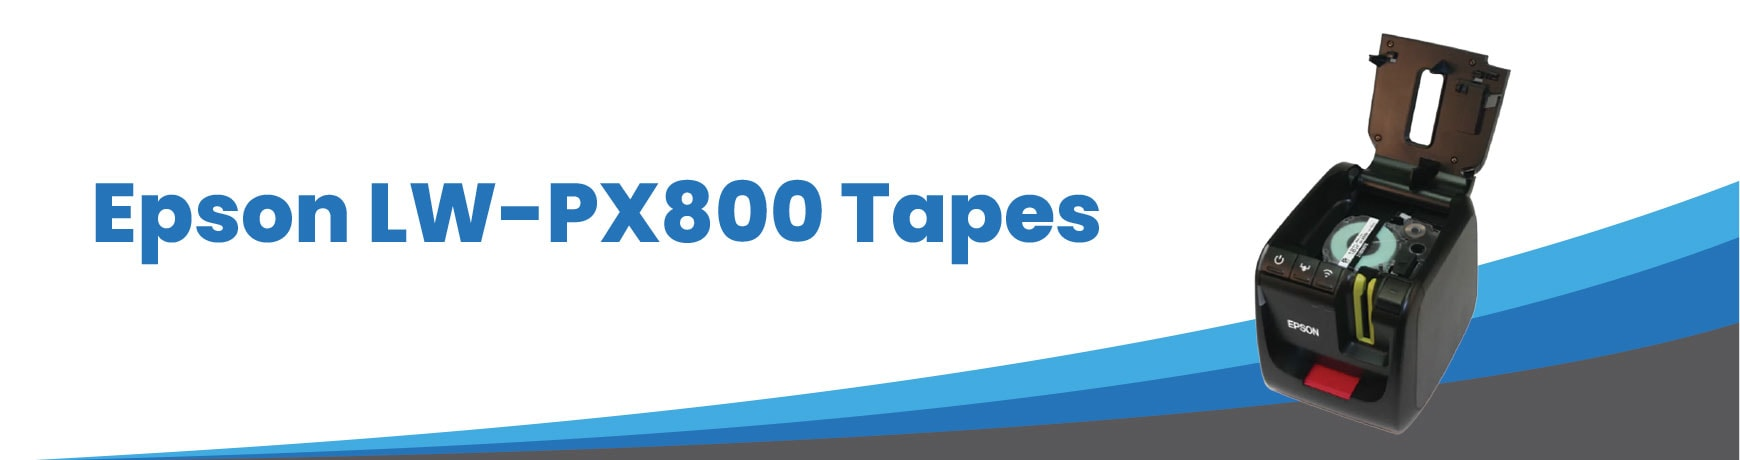 Epson LW-PX800 Tapes